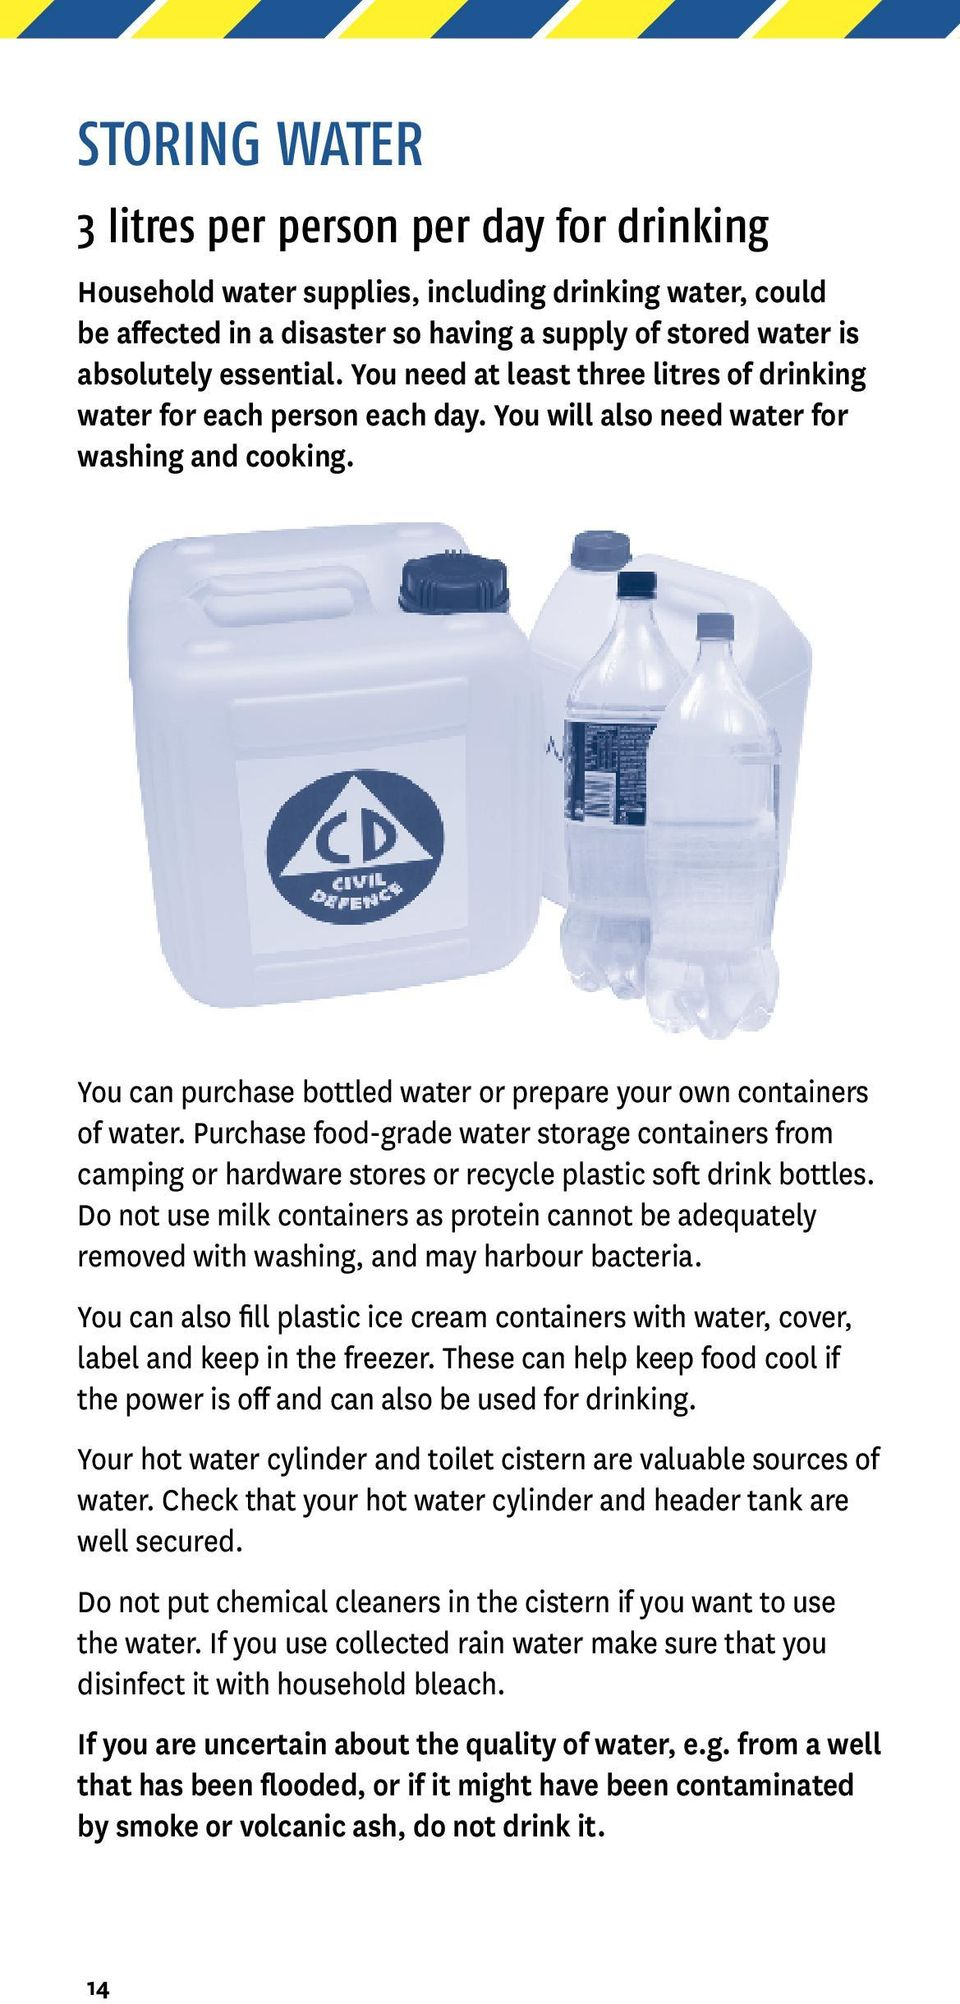 Purchase food-grade water storage containers from camping or hardware stores or recycle plastic soft drink bottles.